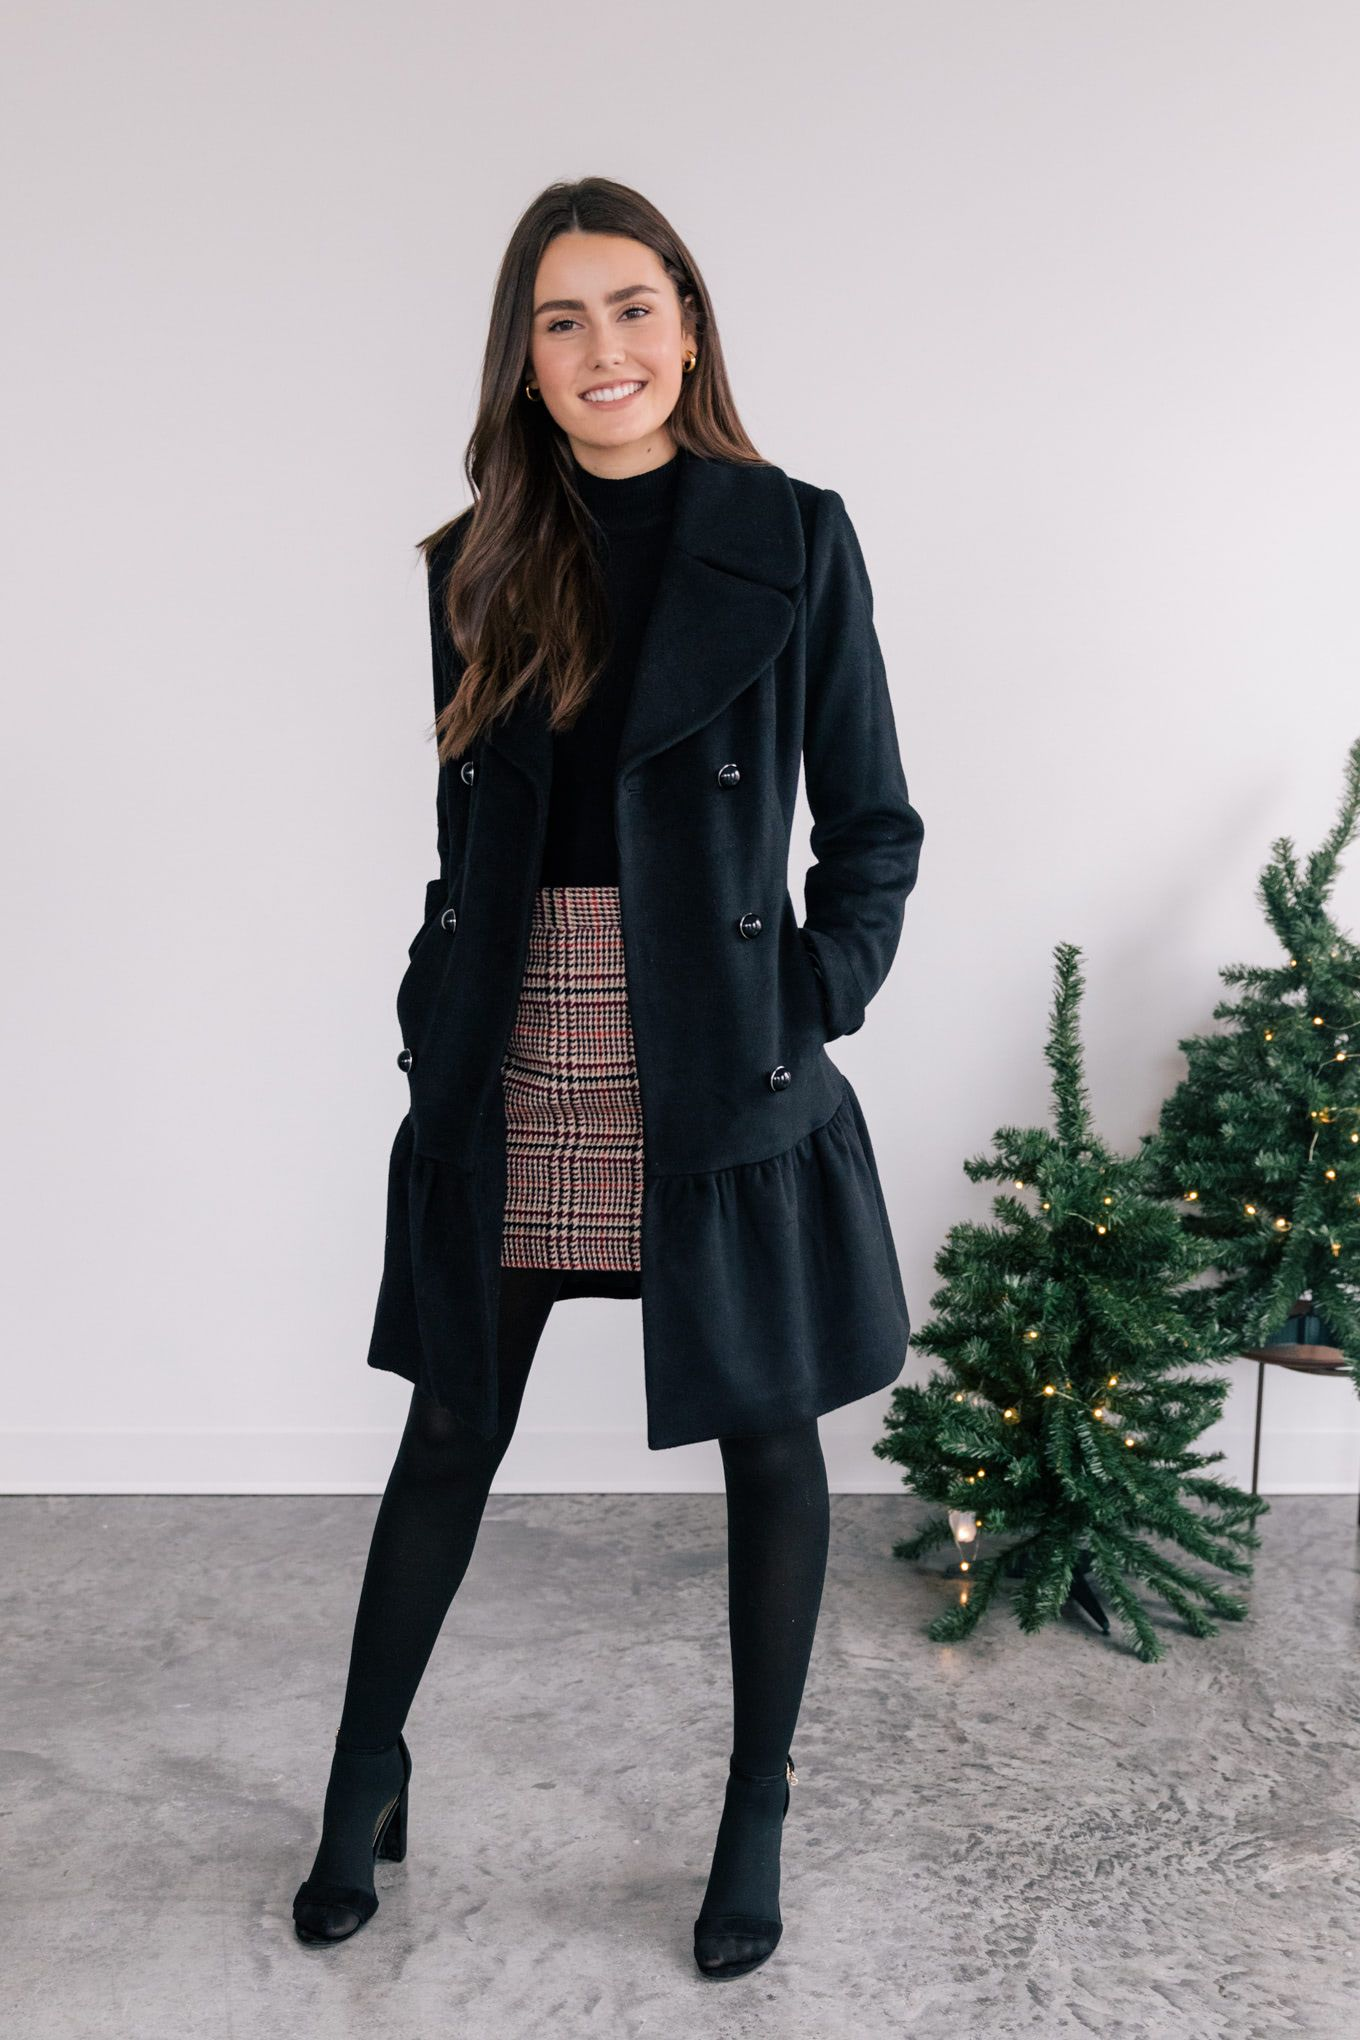 Our Team's Favorite Pieces from the December Collection - Gal Meets Glam #businessattire